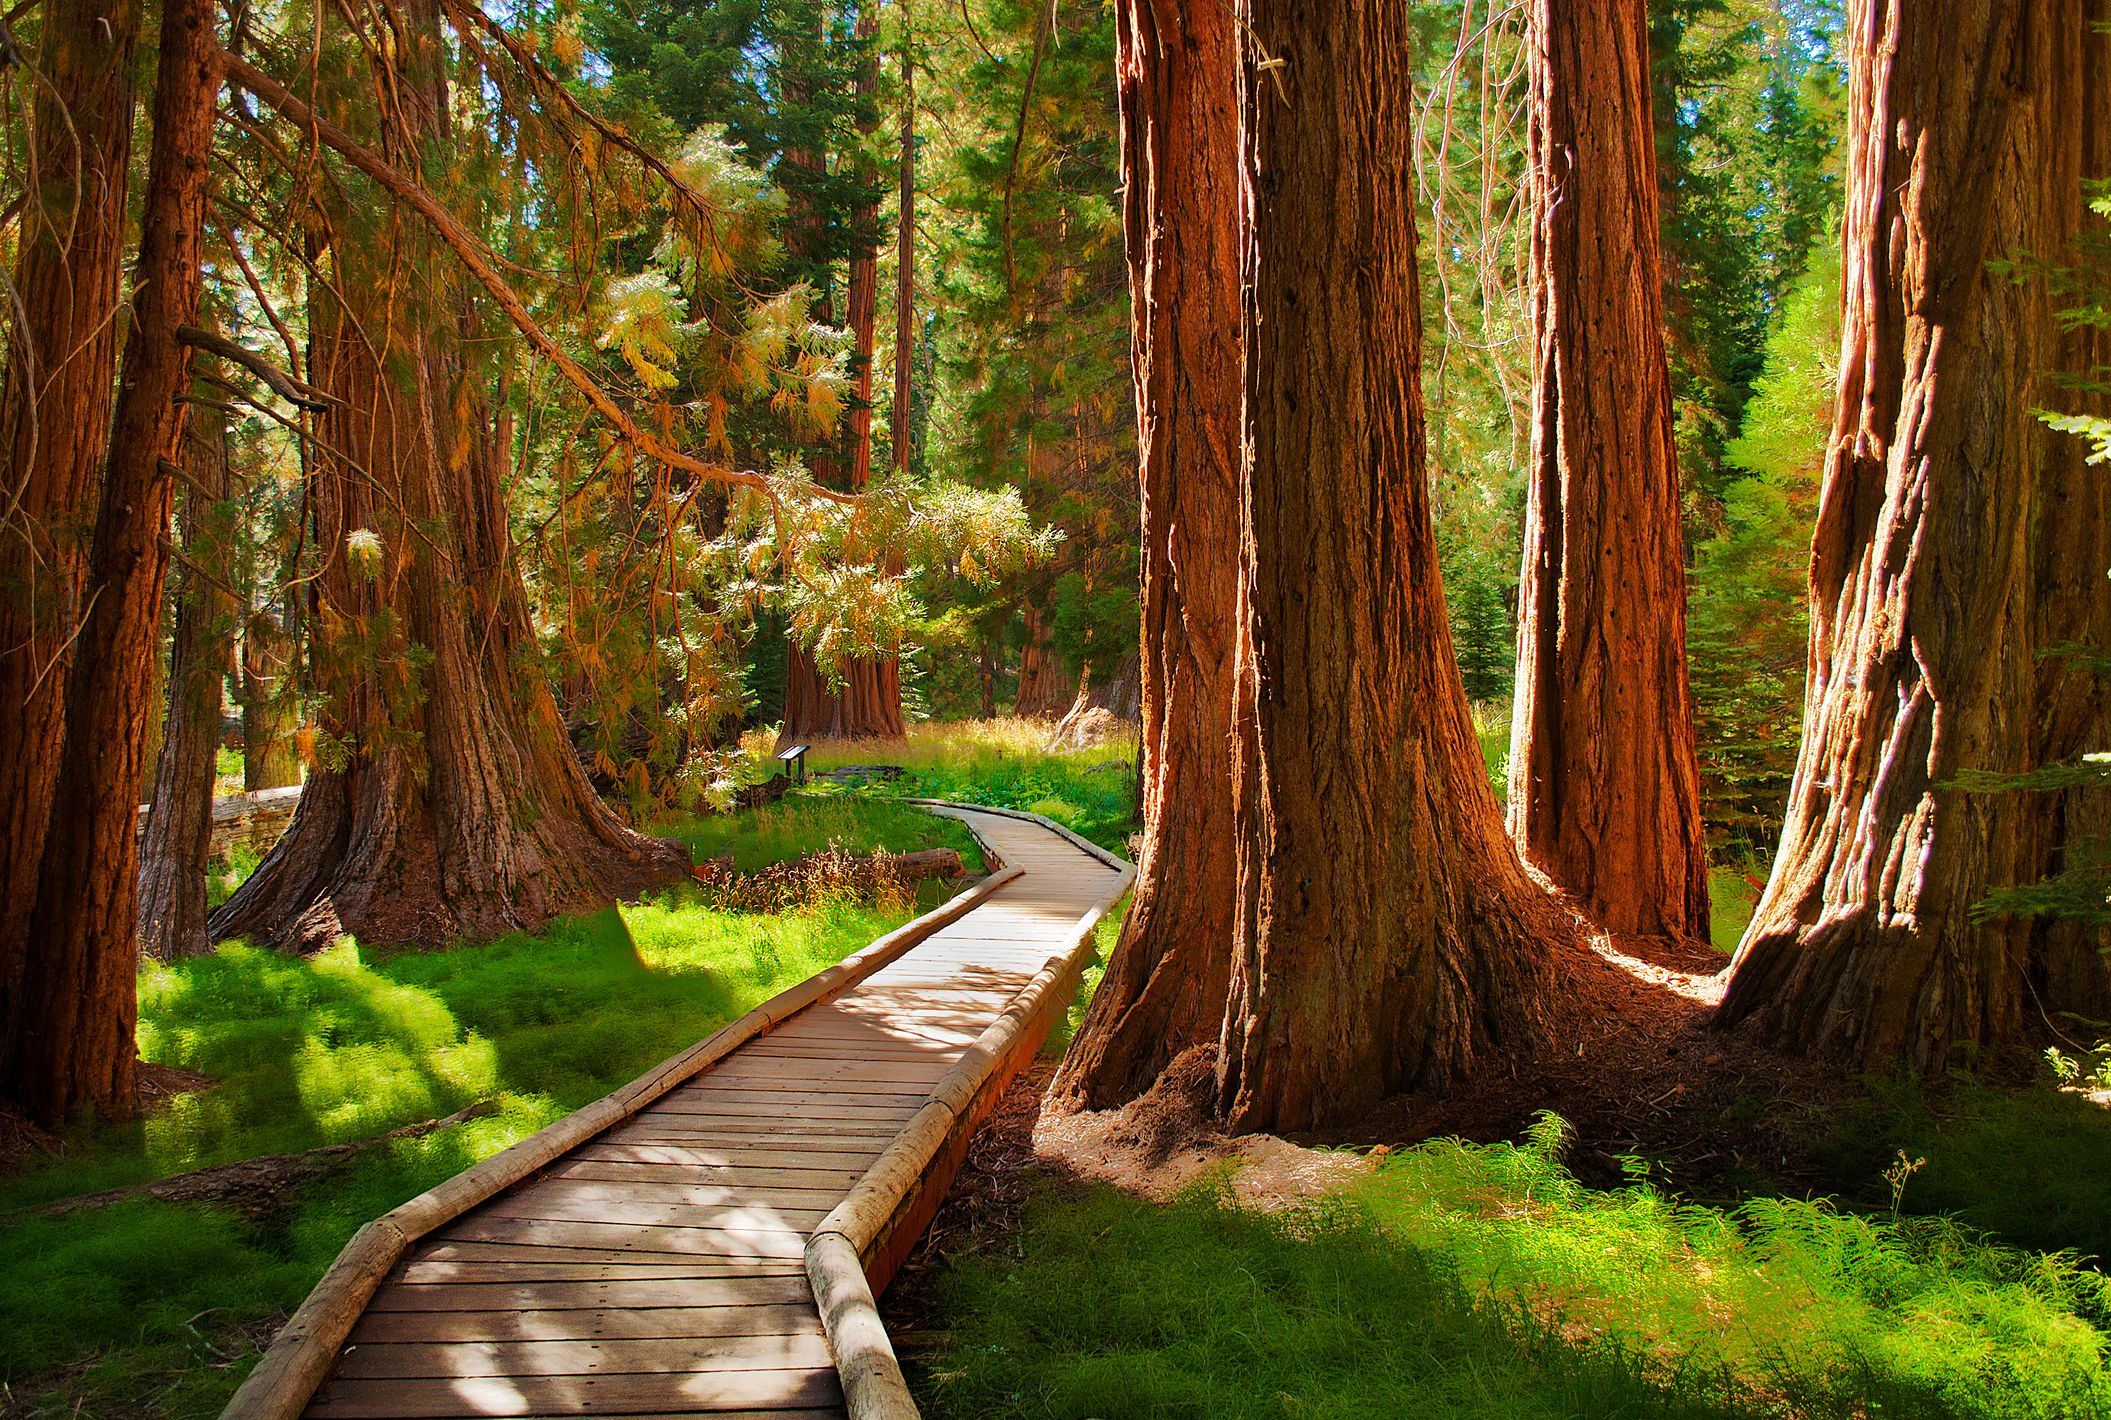 Parque Nacional Sequoia, California